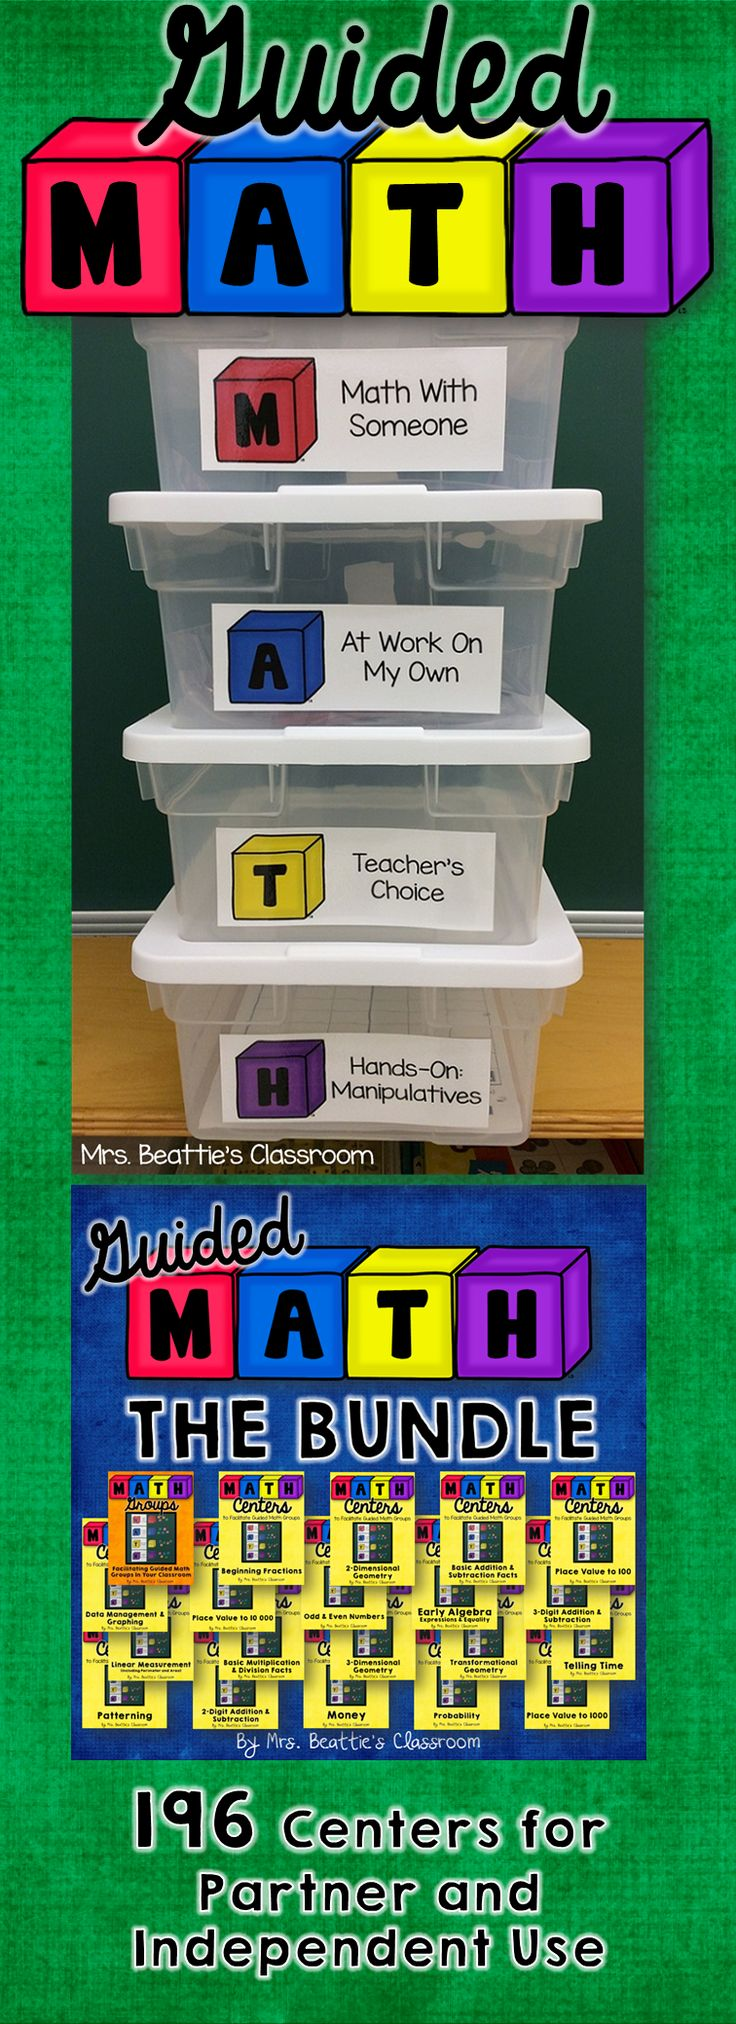 Using a Guided Math or Daily 5 Math approach in your classroom? Grab these Guided Math resources from Mrs. Beattie's Classroom in one low-cost bundle!! Click to check out the great reviews! #guidedmath #centers #handson #classroom